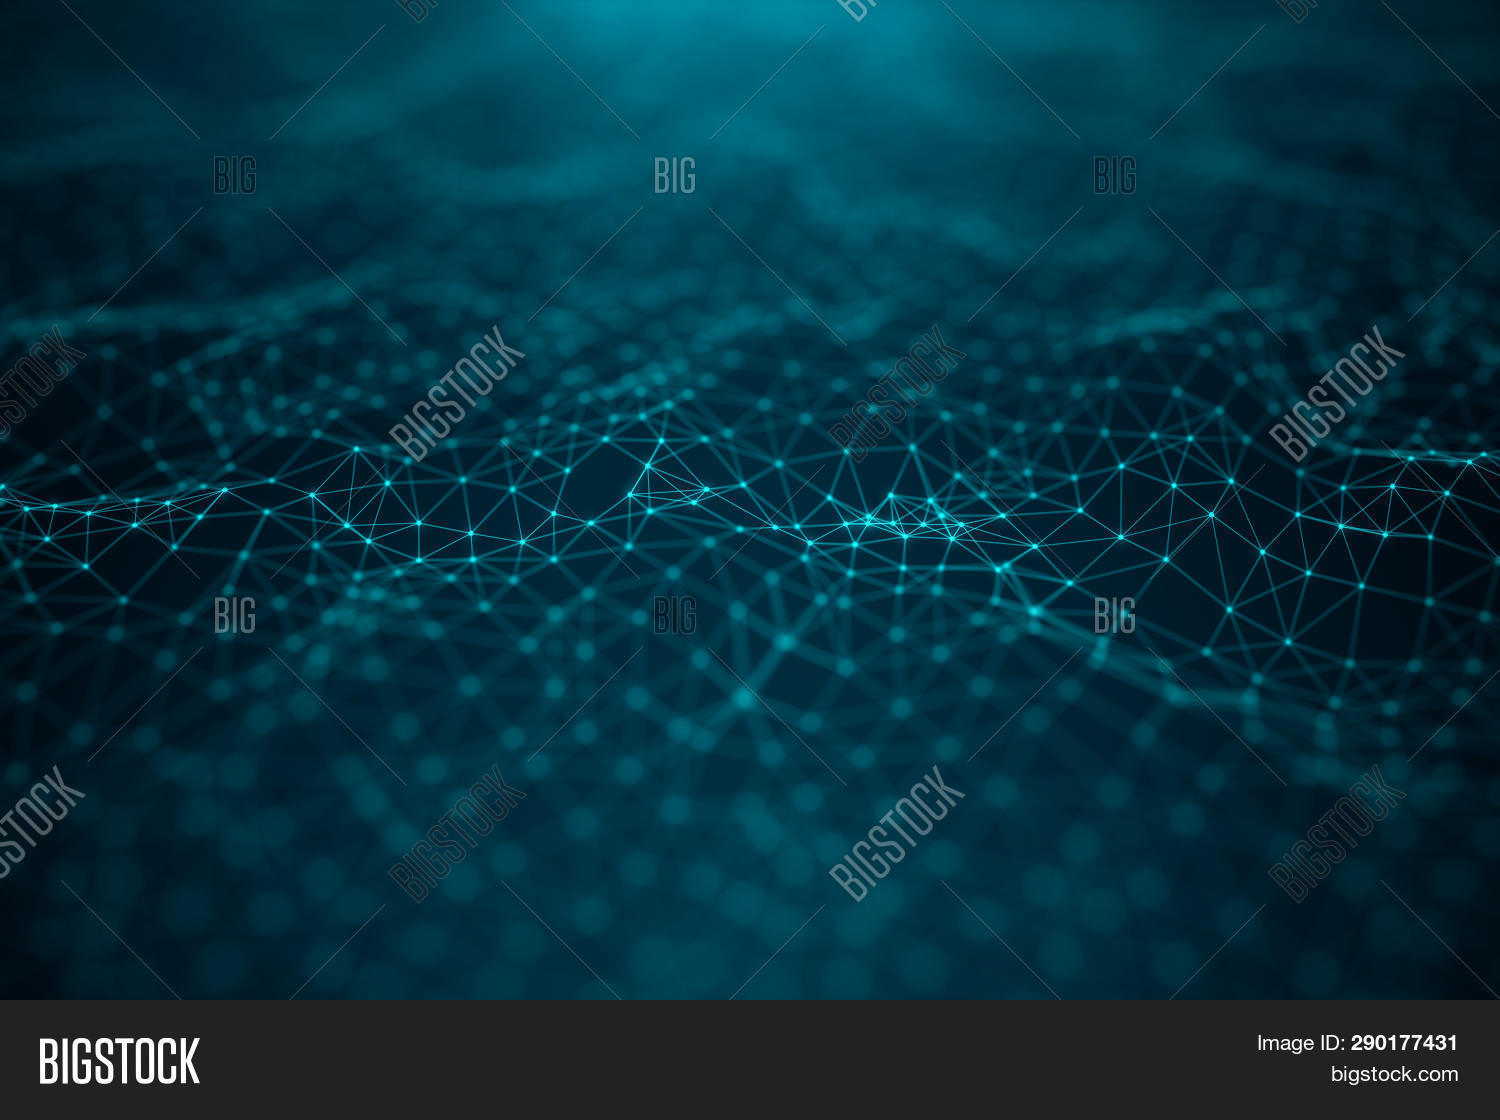 3d,abstract,ai,artificial,background,big,binary,blue,business,code,color,communication,computer,concept,connection,cyber,cyberspace,dark,data,design,digital,dot,flow,future,futuristic,geometric,grid,illustration,intelligence,internet,light,line,mesh,modern,network,polygon,science,shape,space,structure,surface,tech,technology,texture,triangle,visualization,wallpaper,wave,wireframe